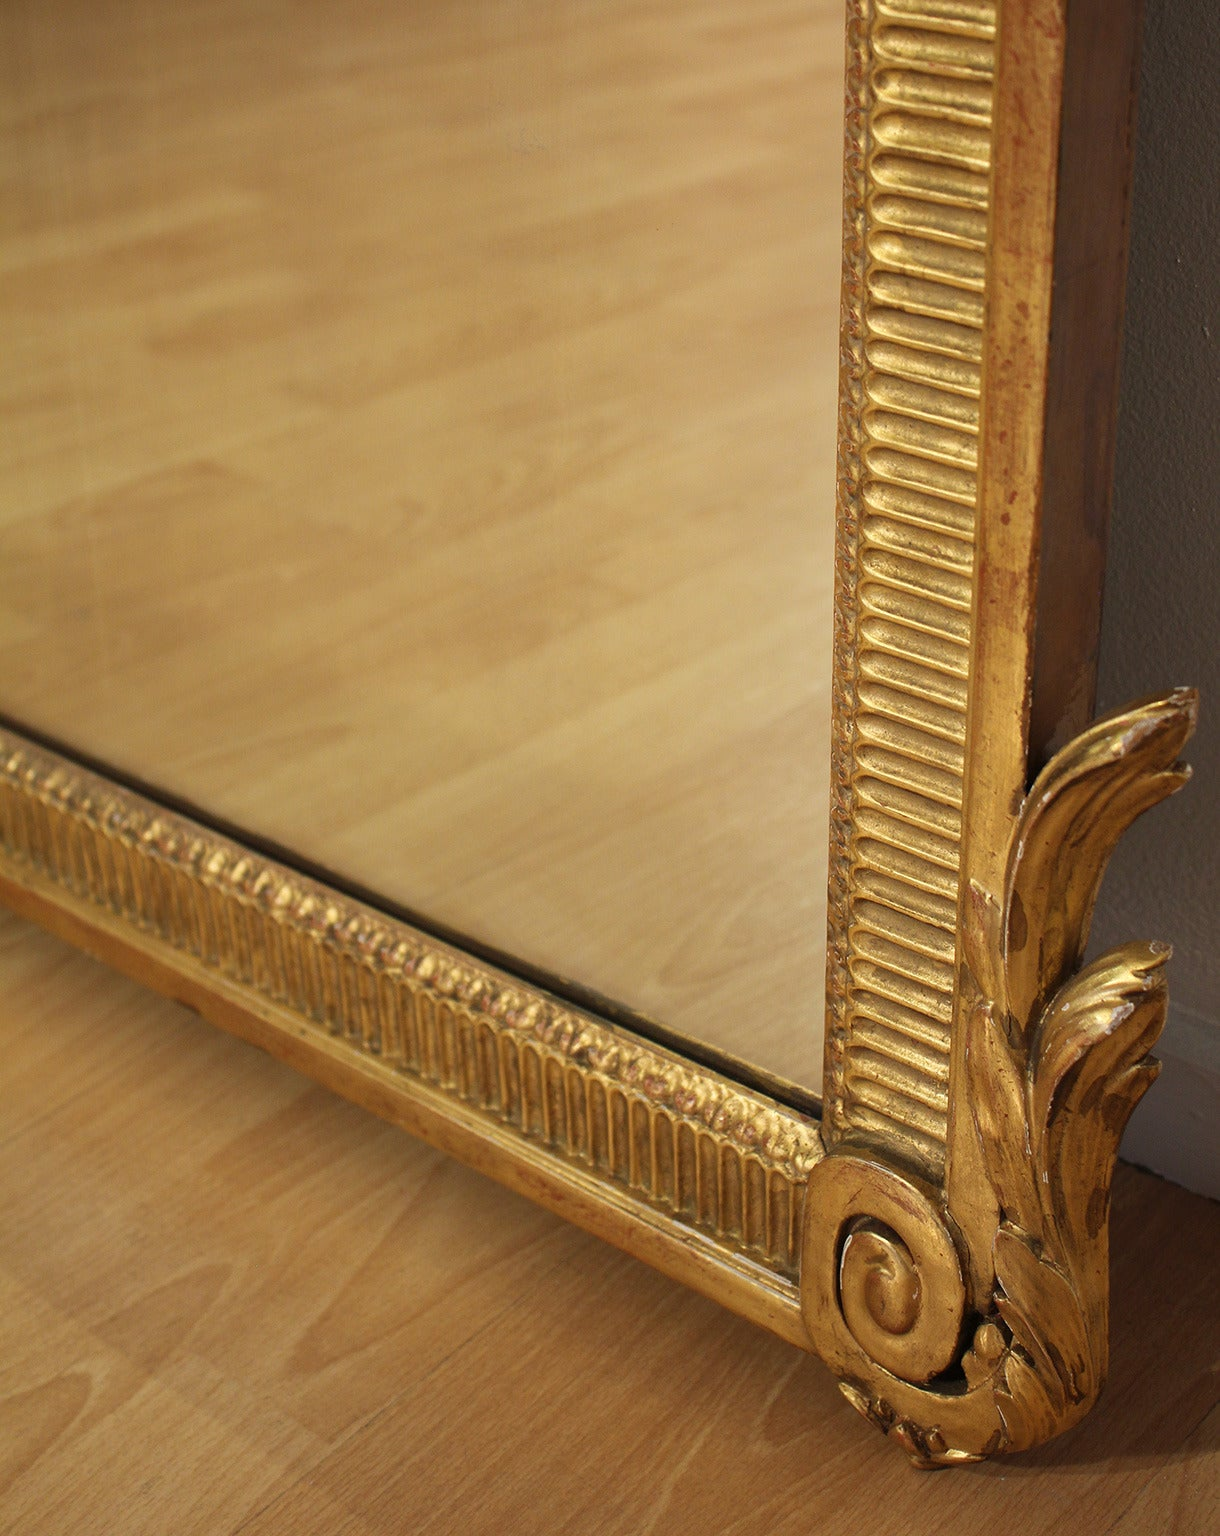 Large Antique French Neoclassical Decorative Gold Framed Mirror image ...